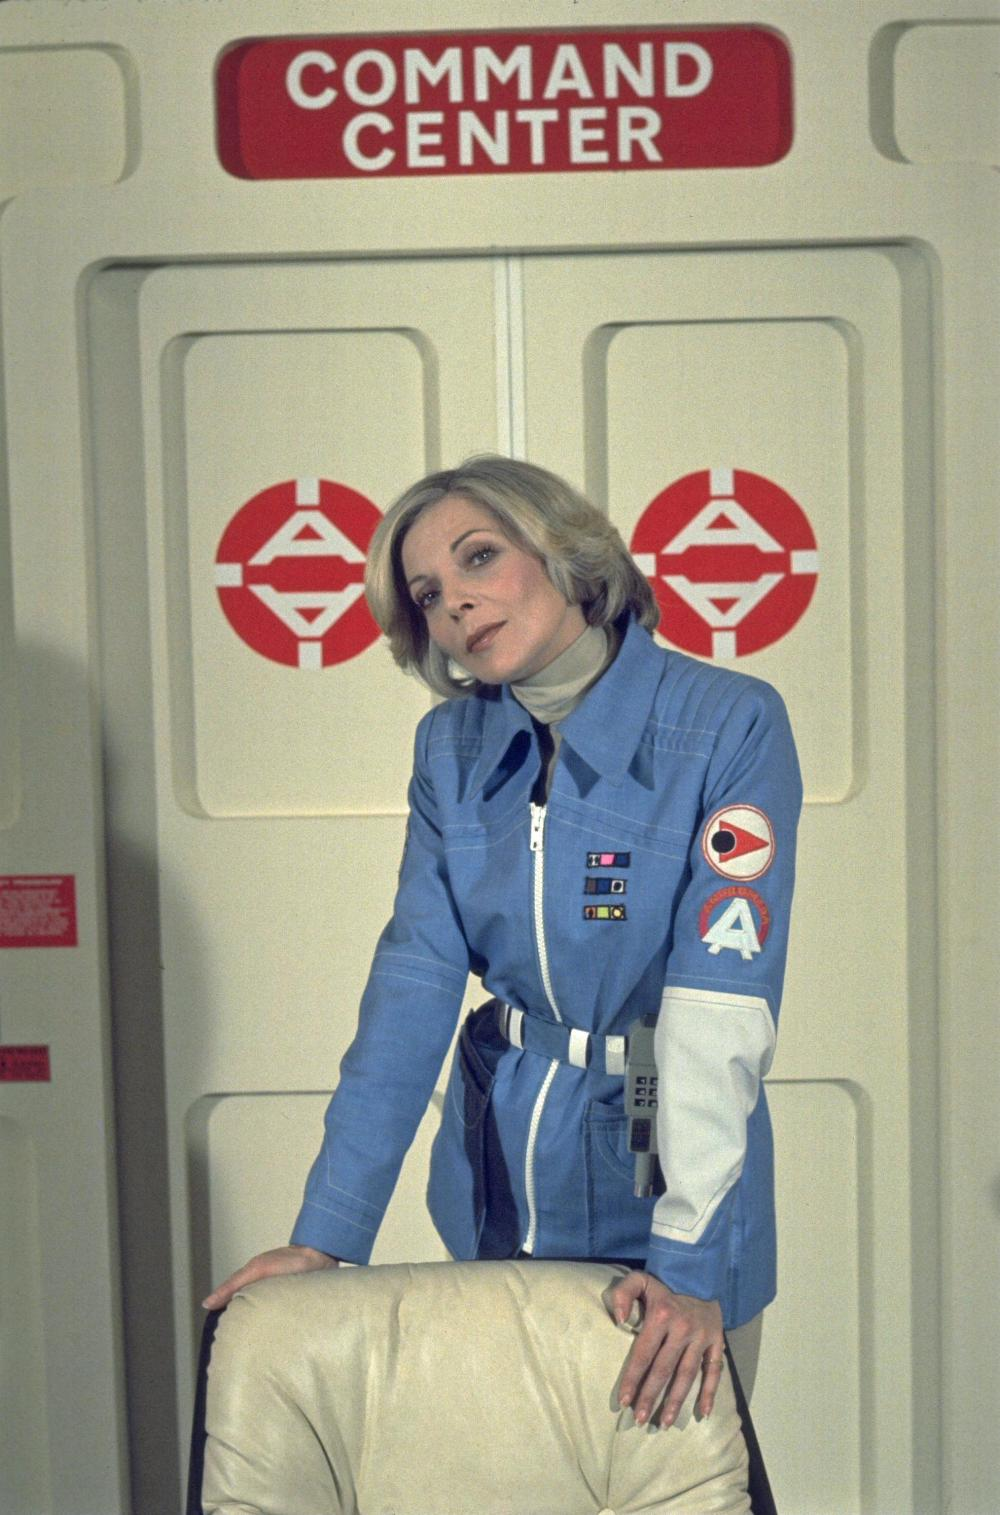 Space 1999 Catacombs Command Center doors